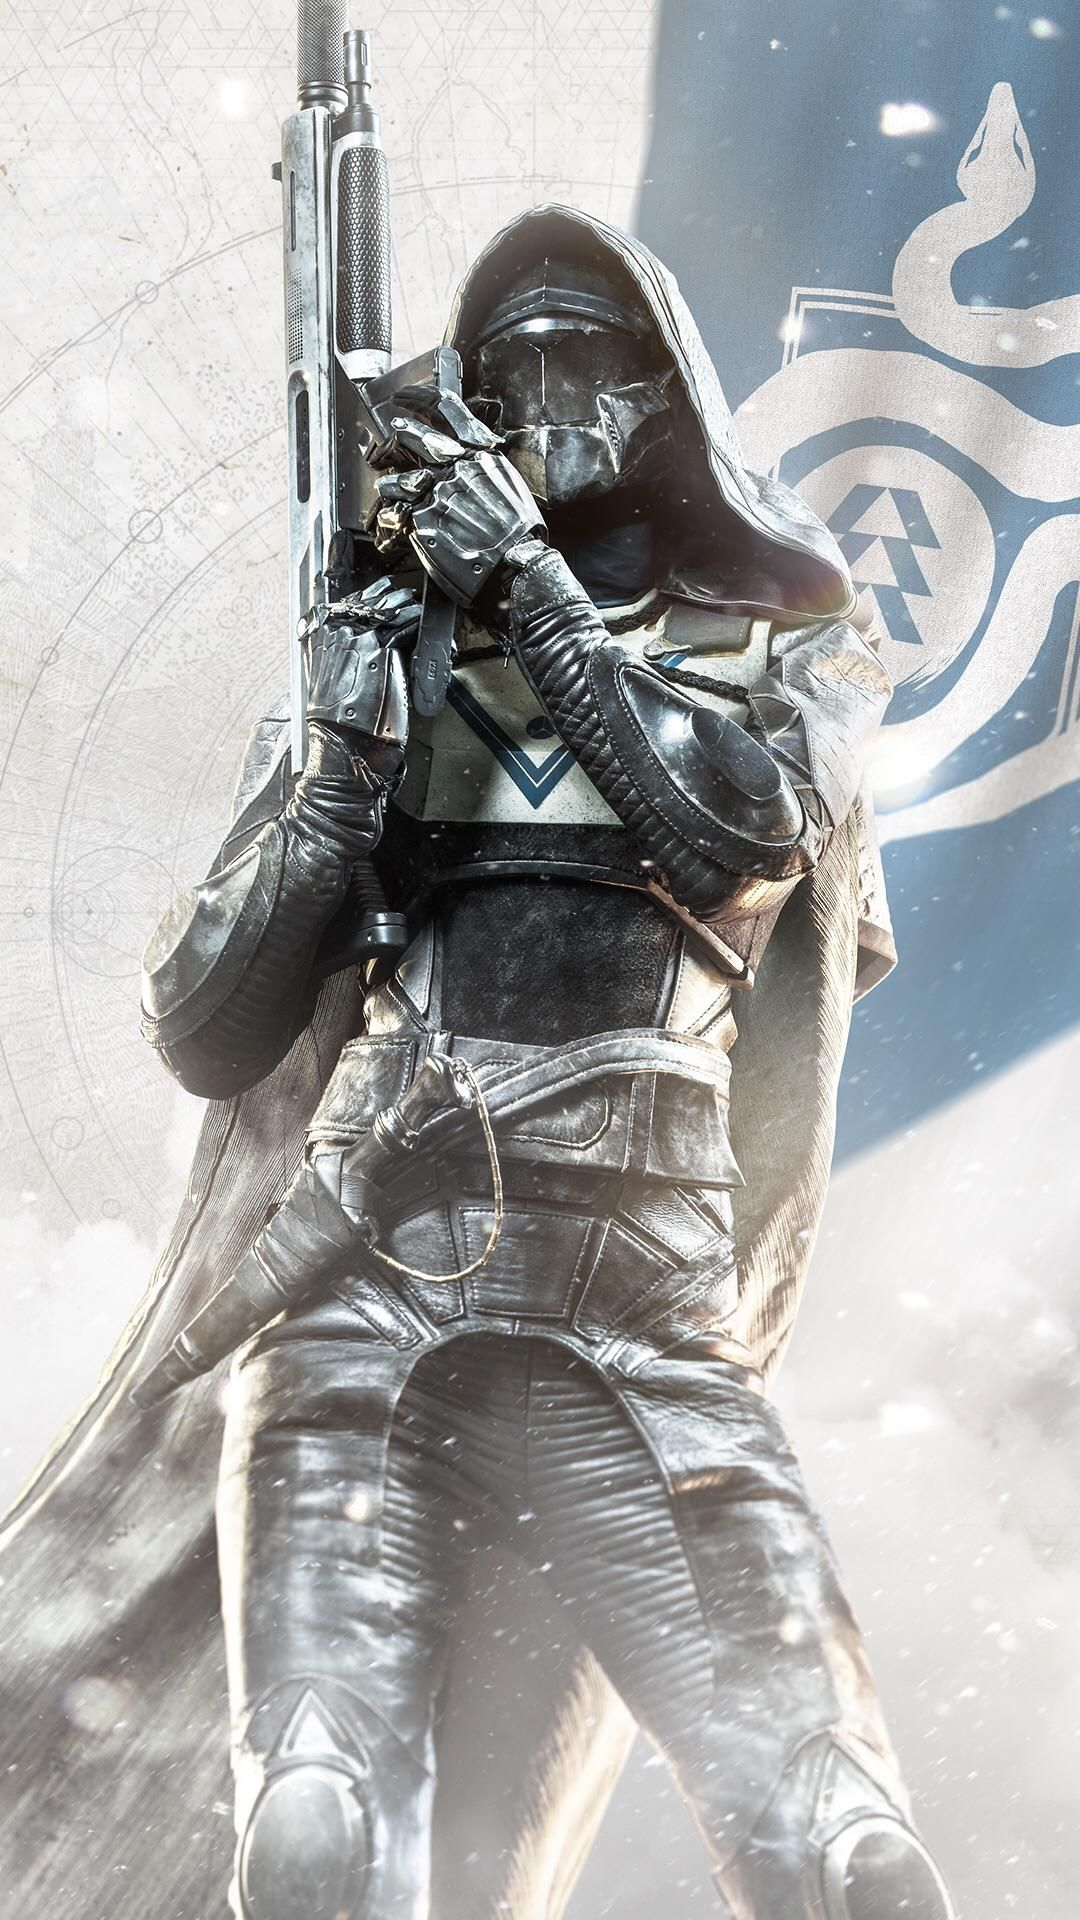 Destiny 2 Hunter smartphone wallpaper gaming